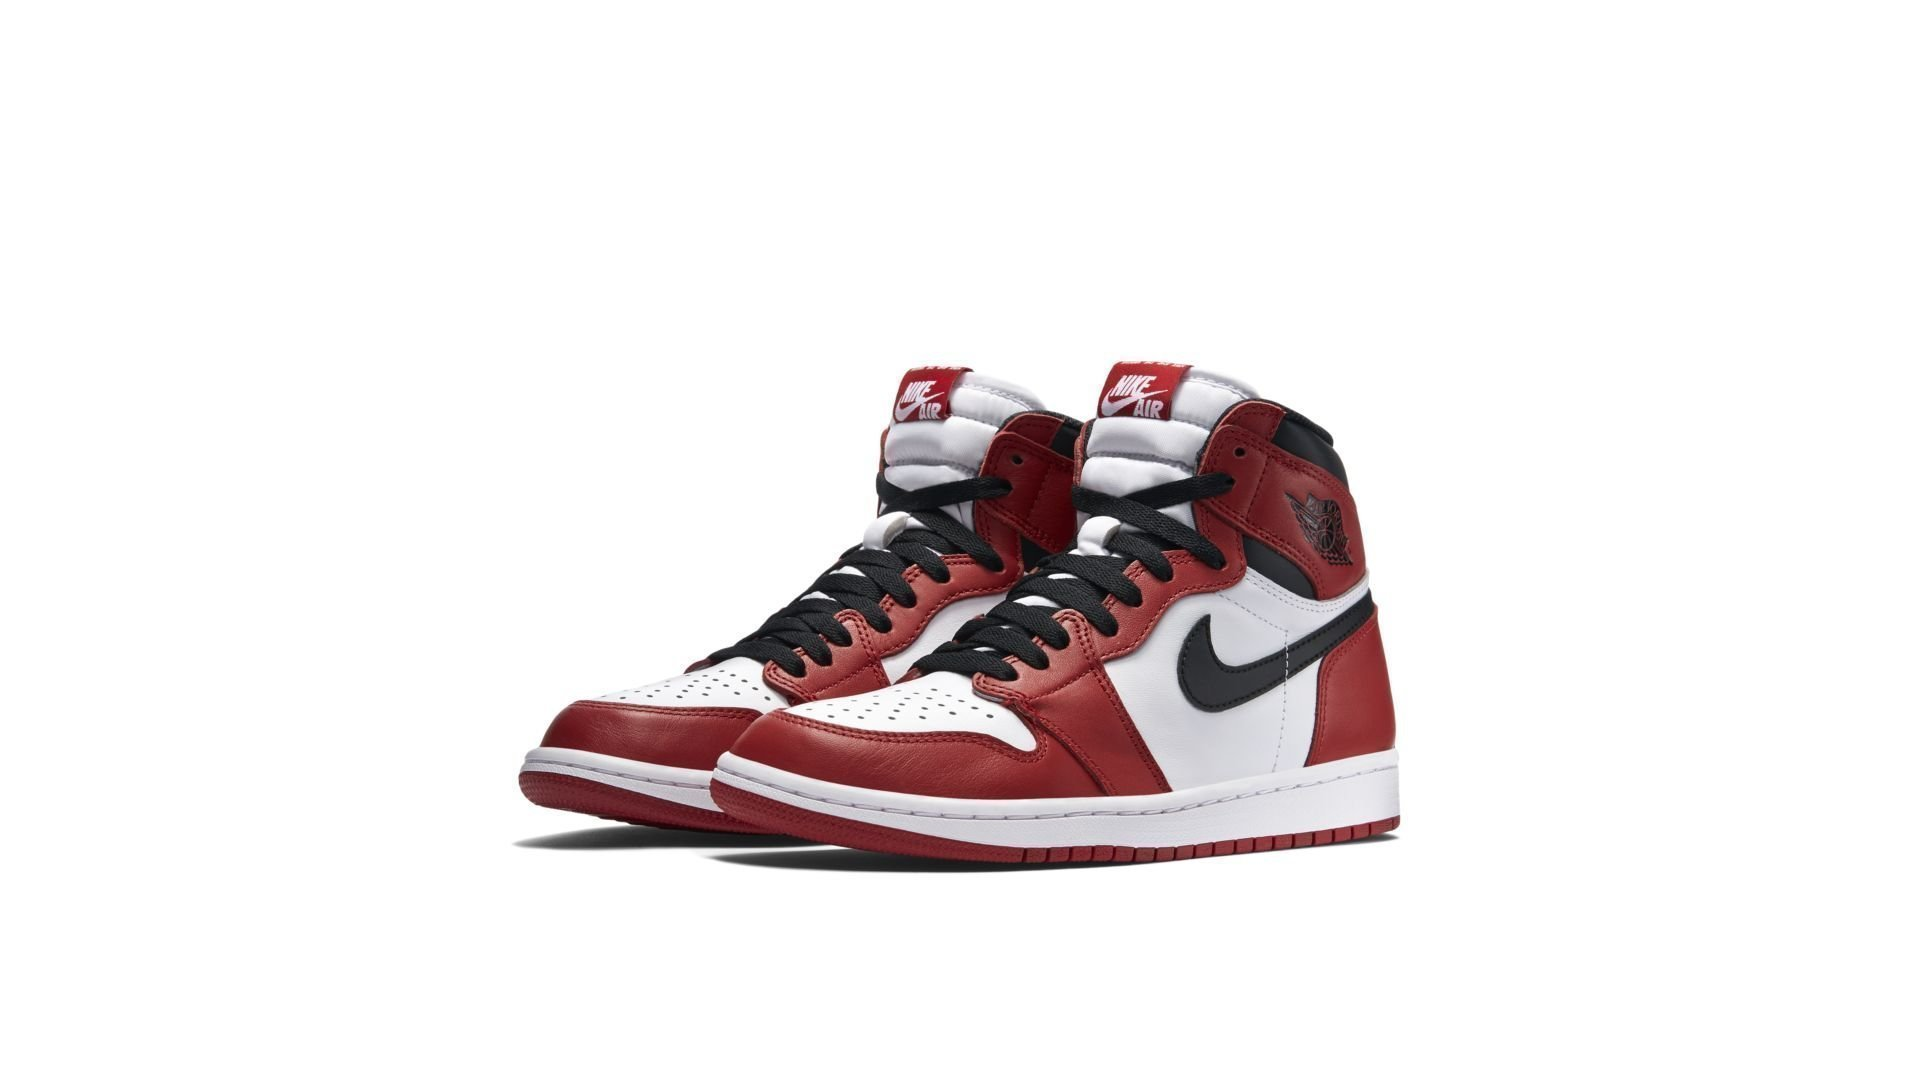 Jordan 1 Retro Chicago (2015) (555088-101)